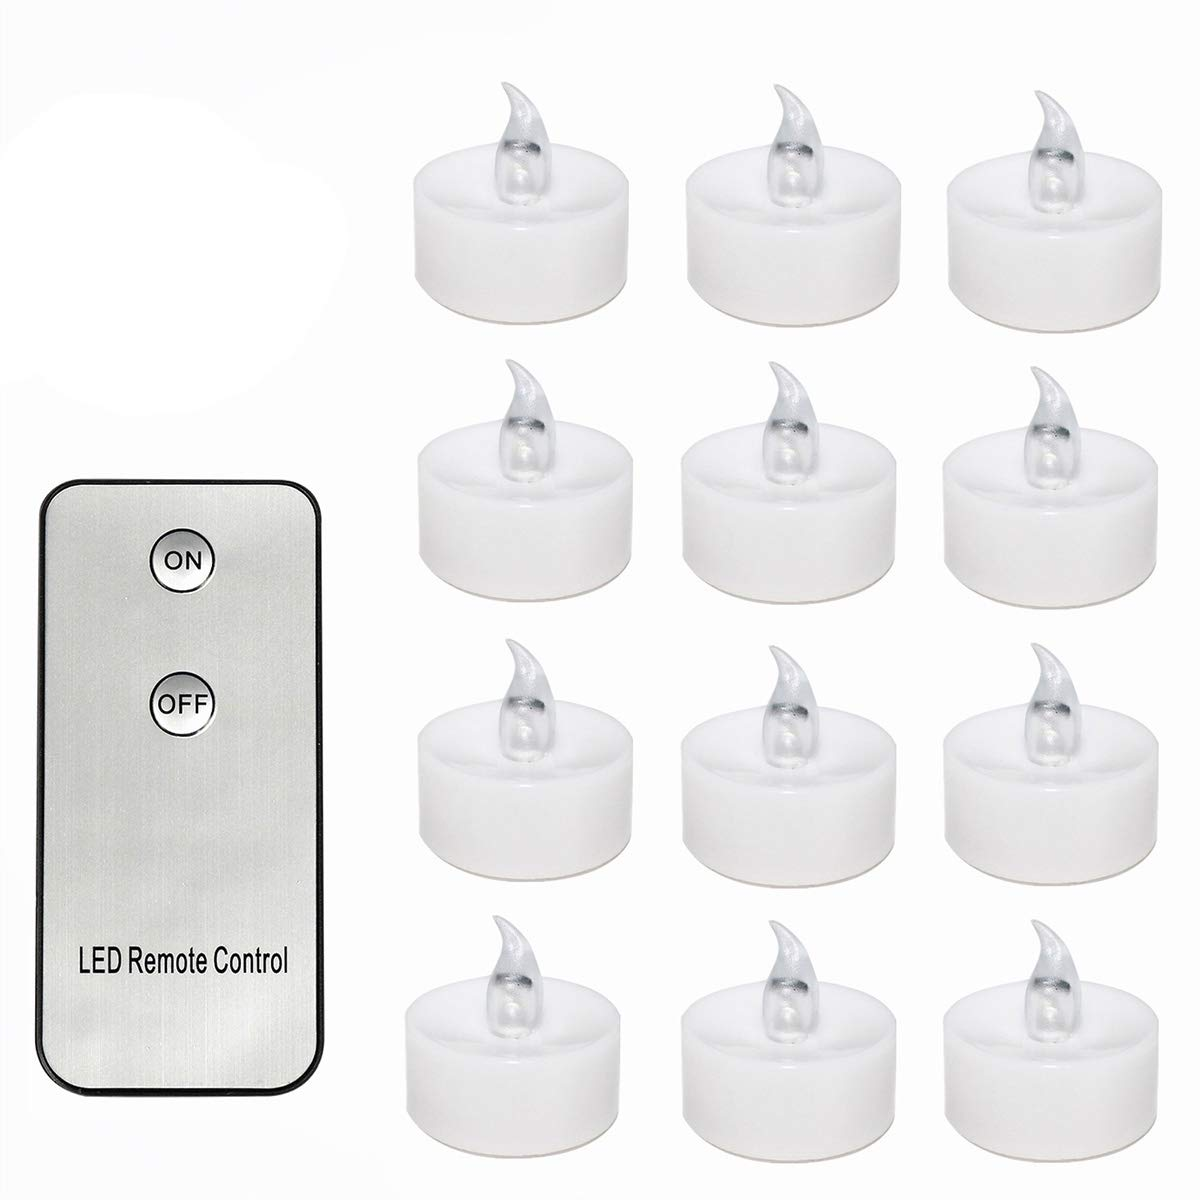 STOBOK 12pcs LED Candle Flickering Tealight Candle with Remote Control for Proposal Valentine Wedding Party Birthday Atmosphere Decor